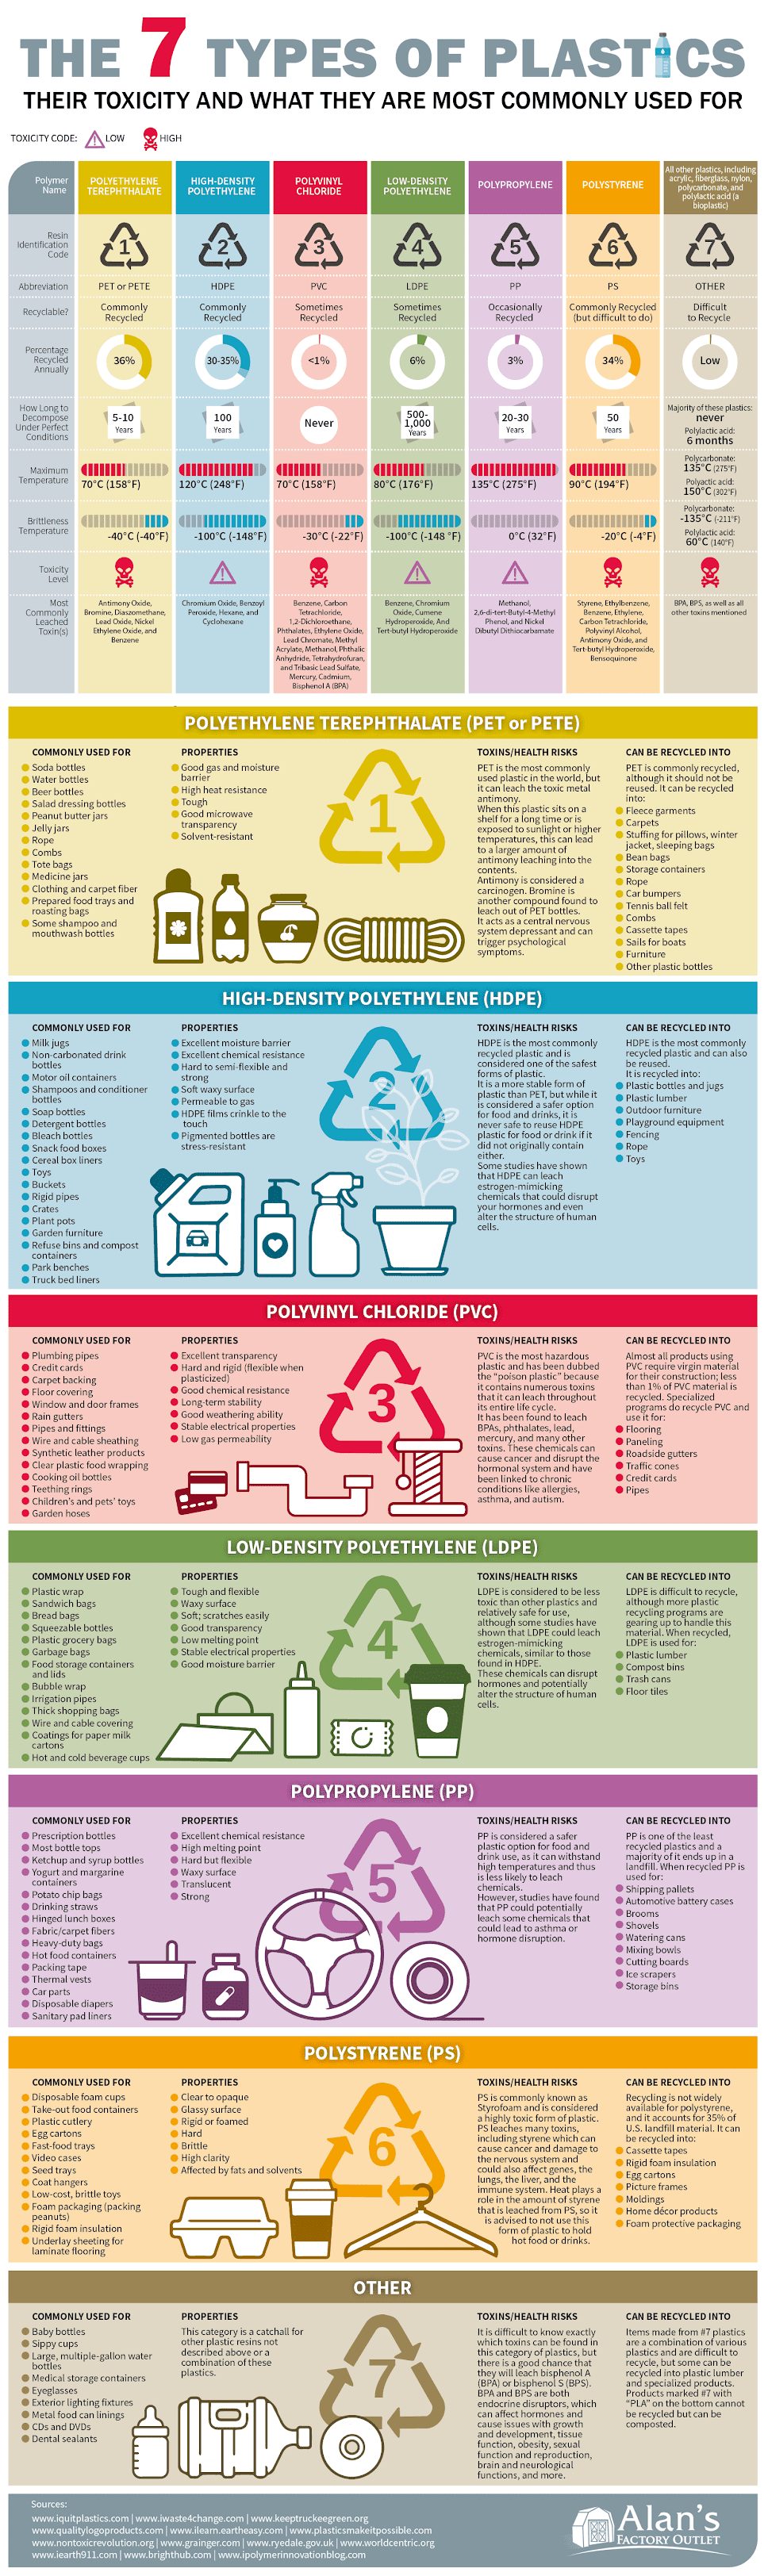 the-7-types-of-plastics-their-toxicity-and-what-they-are-most-commonly-used-for-infographic